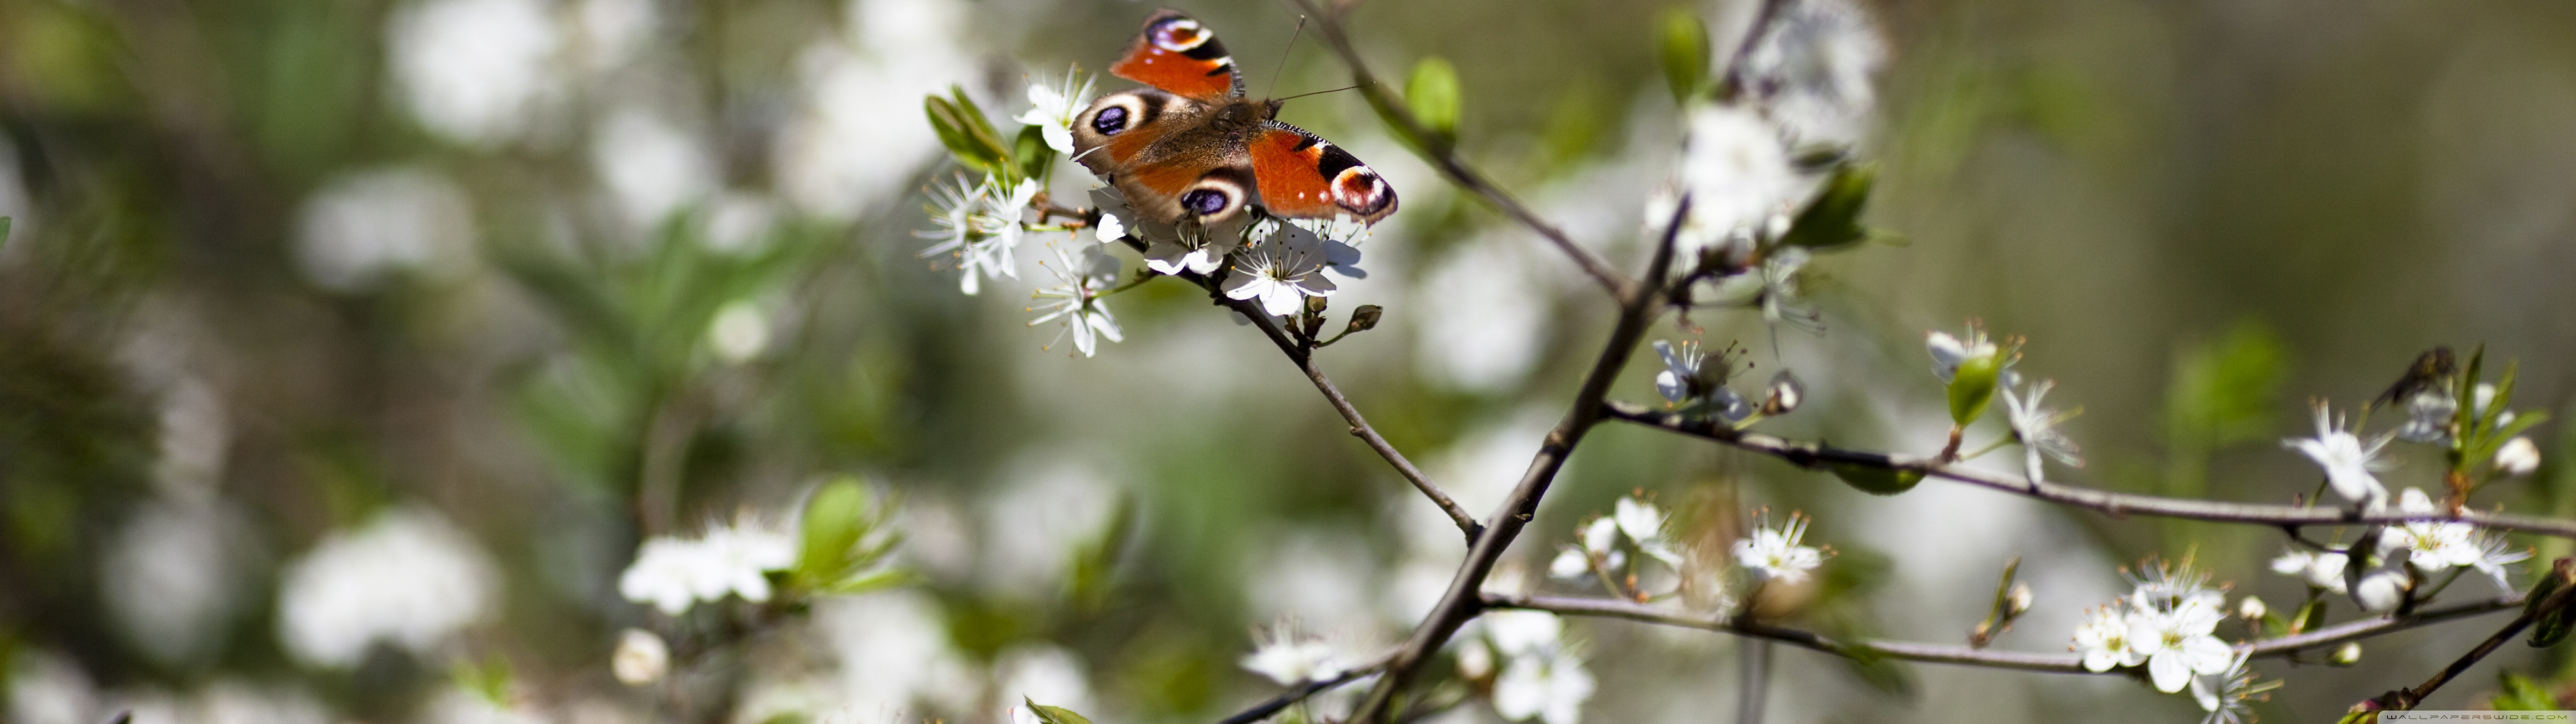 Butterfly Springtime Wallpaper 51201440 160550 HD Wallpaper Res 5120x1440